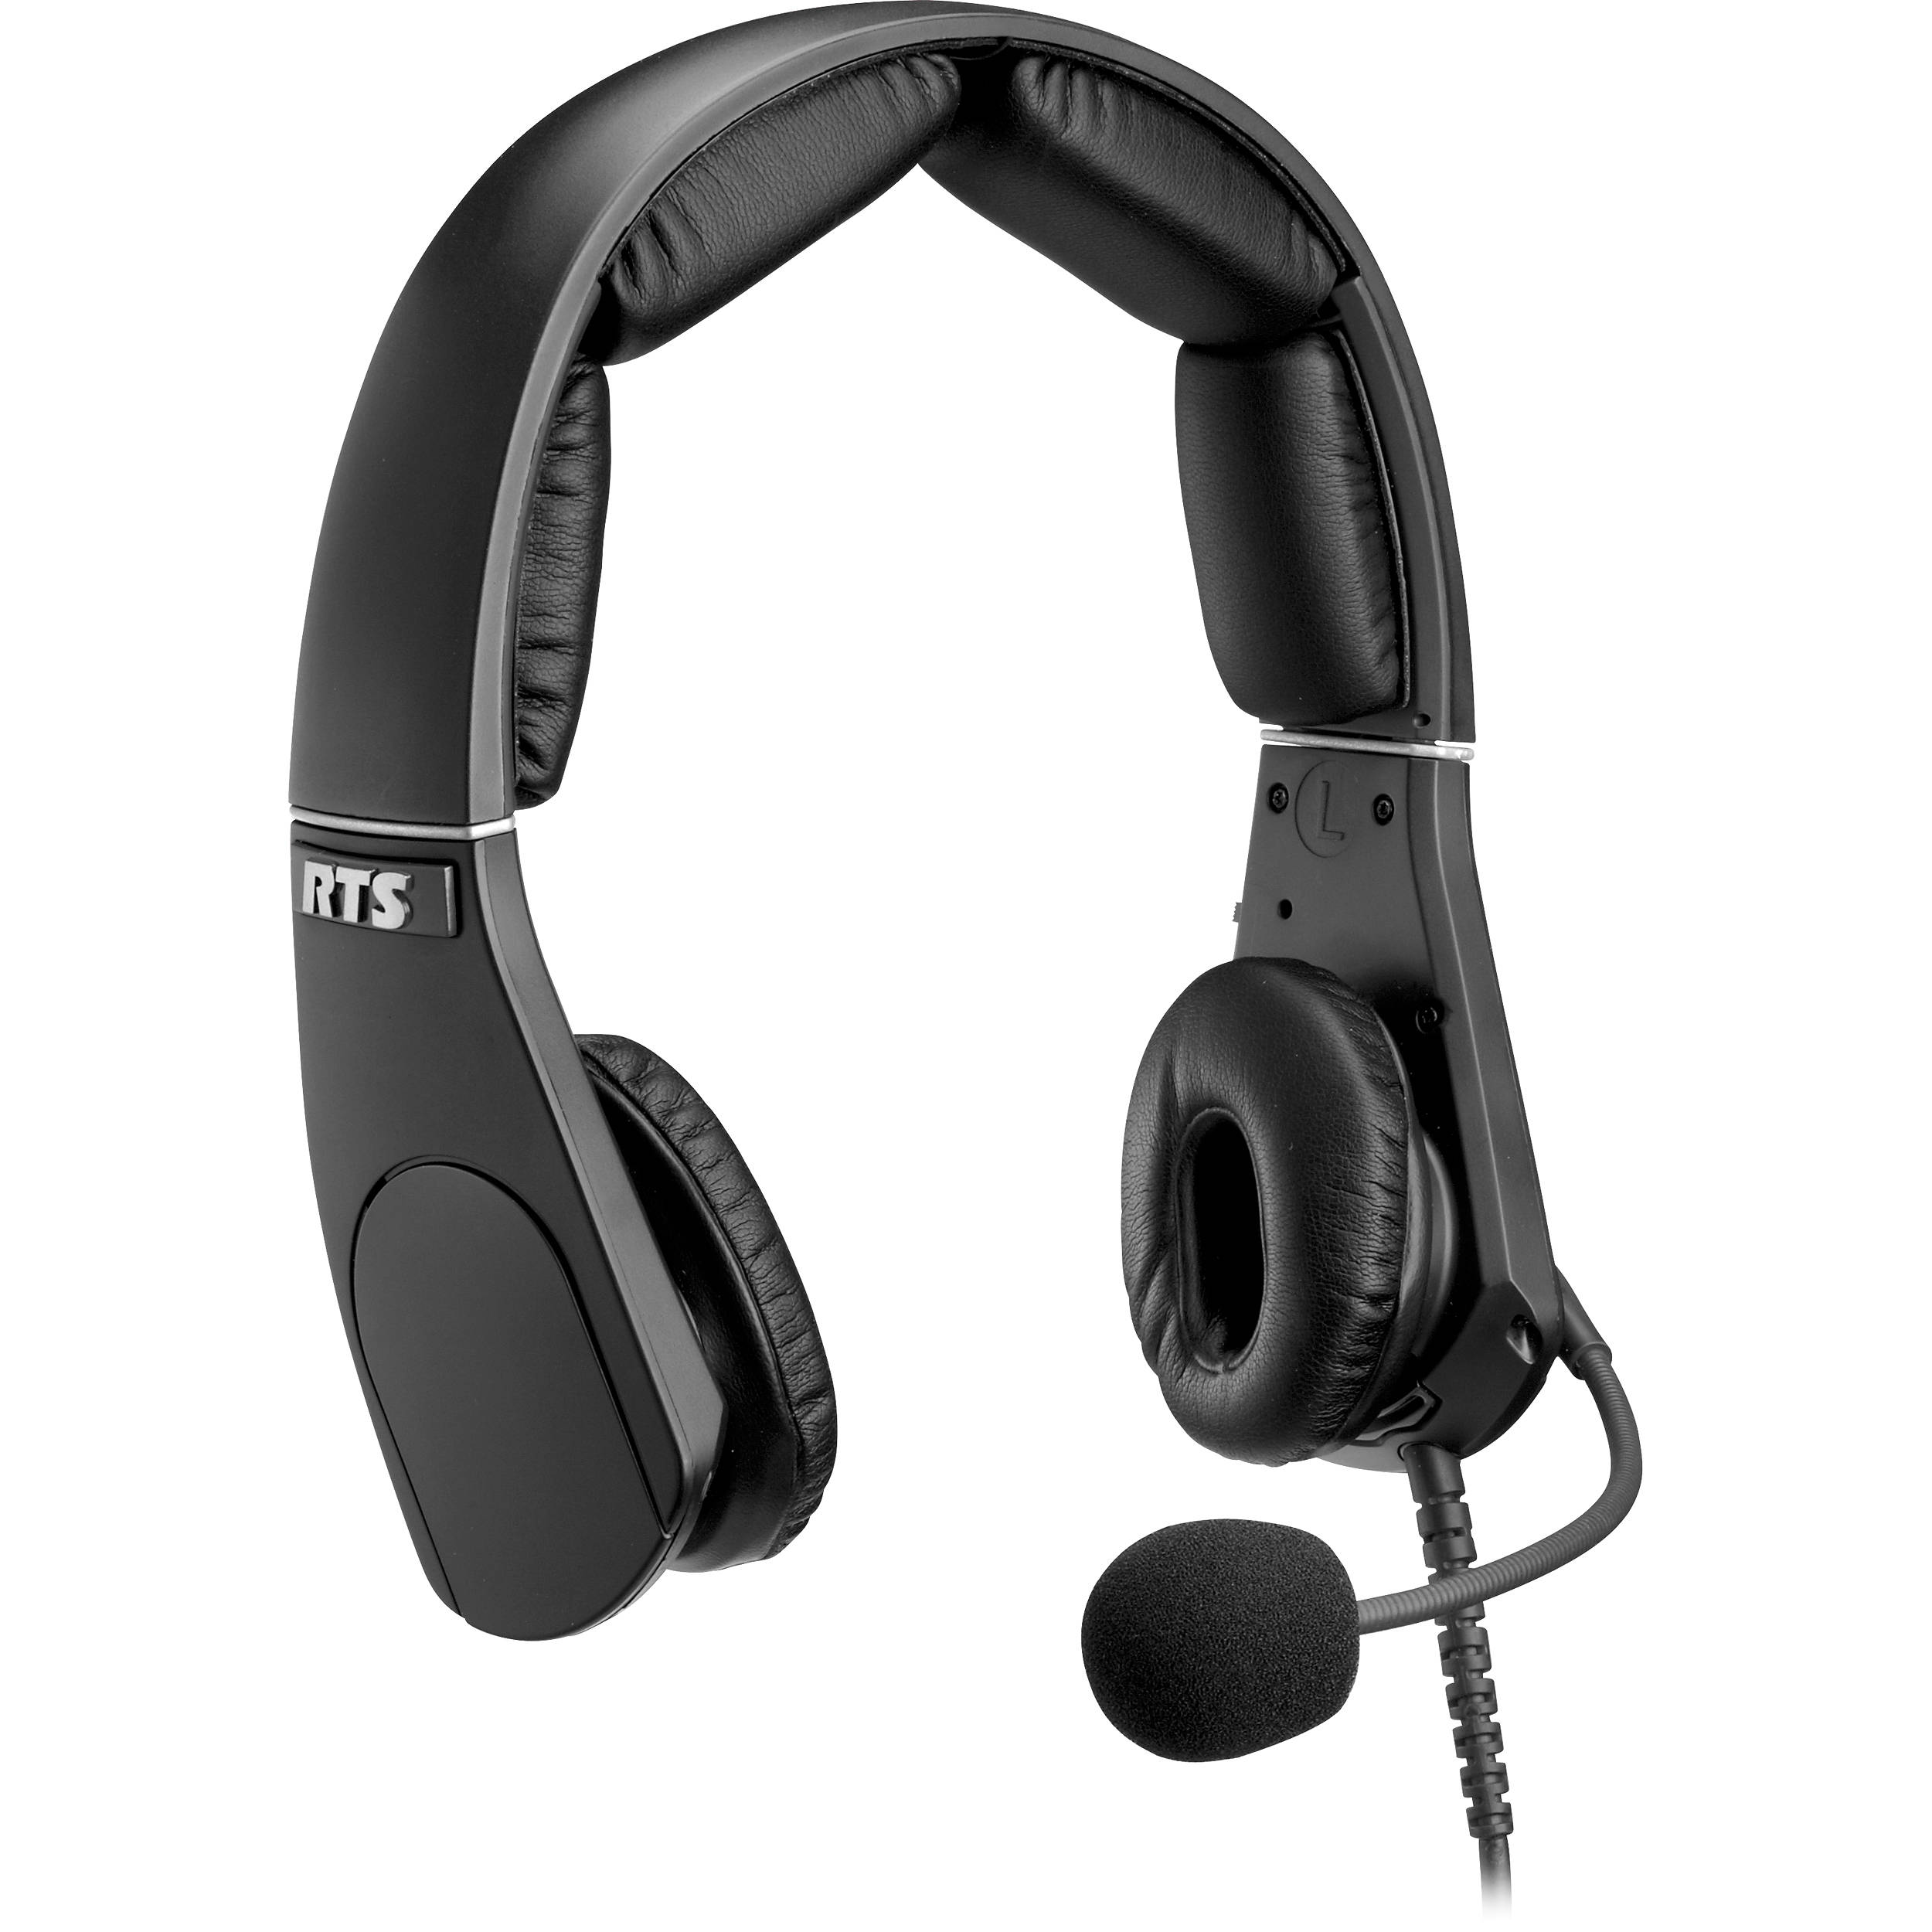 Earbuds android samsung - Telex MH-302 - headset Overview